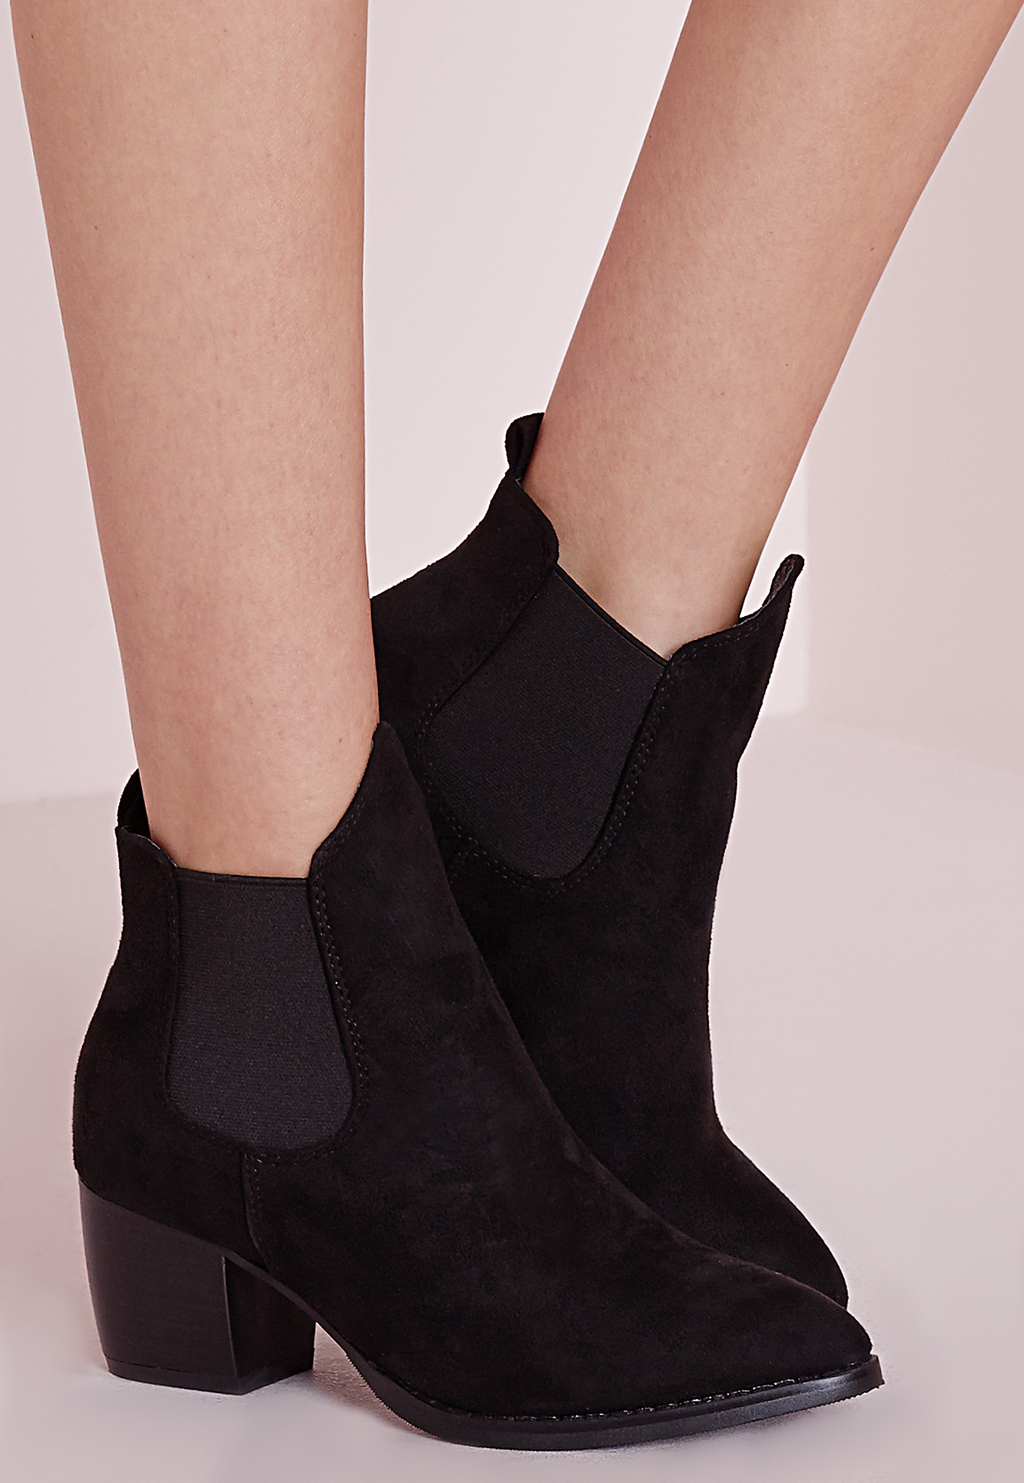 Low Heel Chelsea Boots Black, Black - predominant colour: black; occasions: casual, creative work; material: suede; heel height: mid; heel: standard; toe: pointed toe; boot length: ankle boot; style: cowboy; finish: plain; pattern: plain; season: s/s 2016; wardrobe: basic